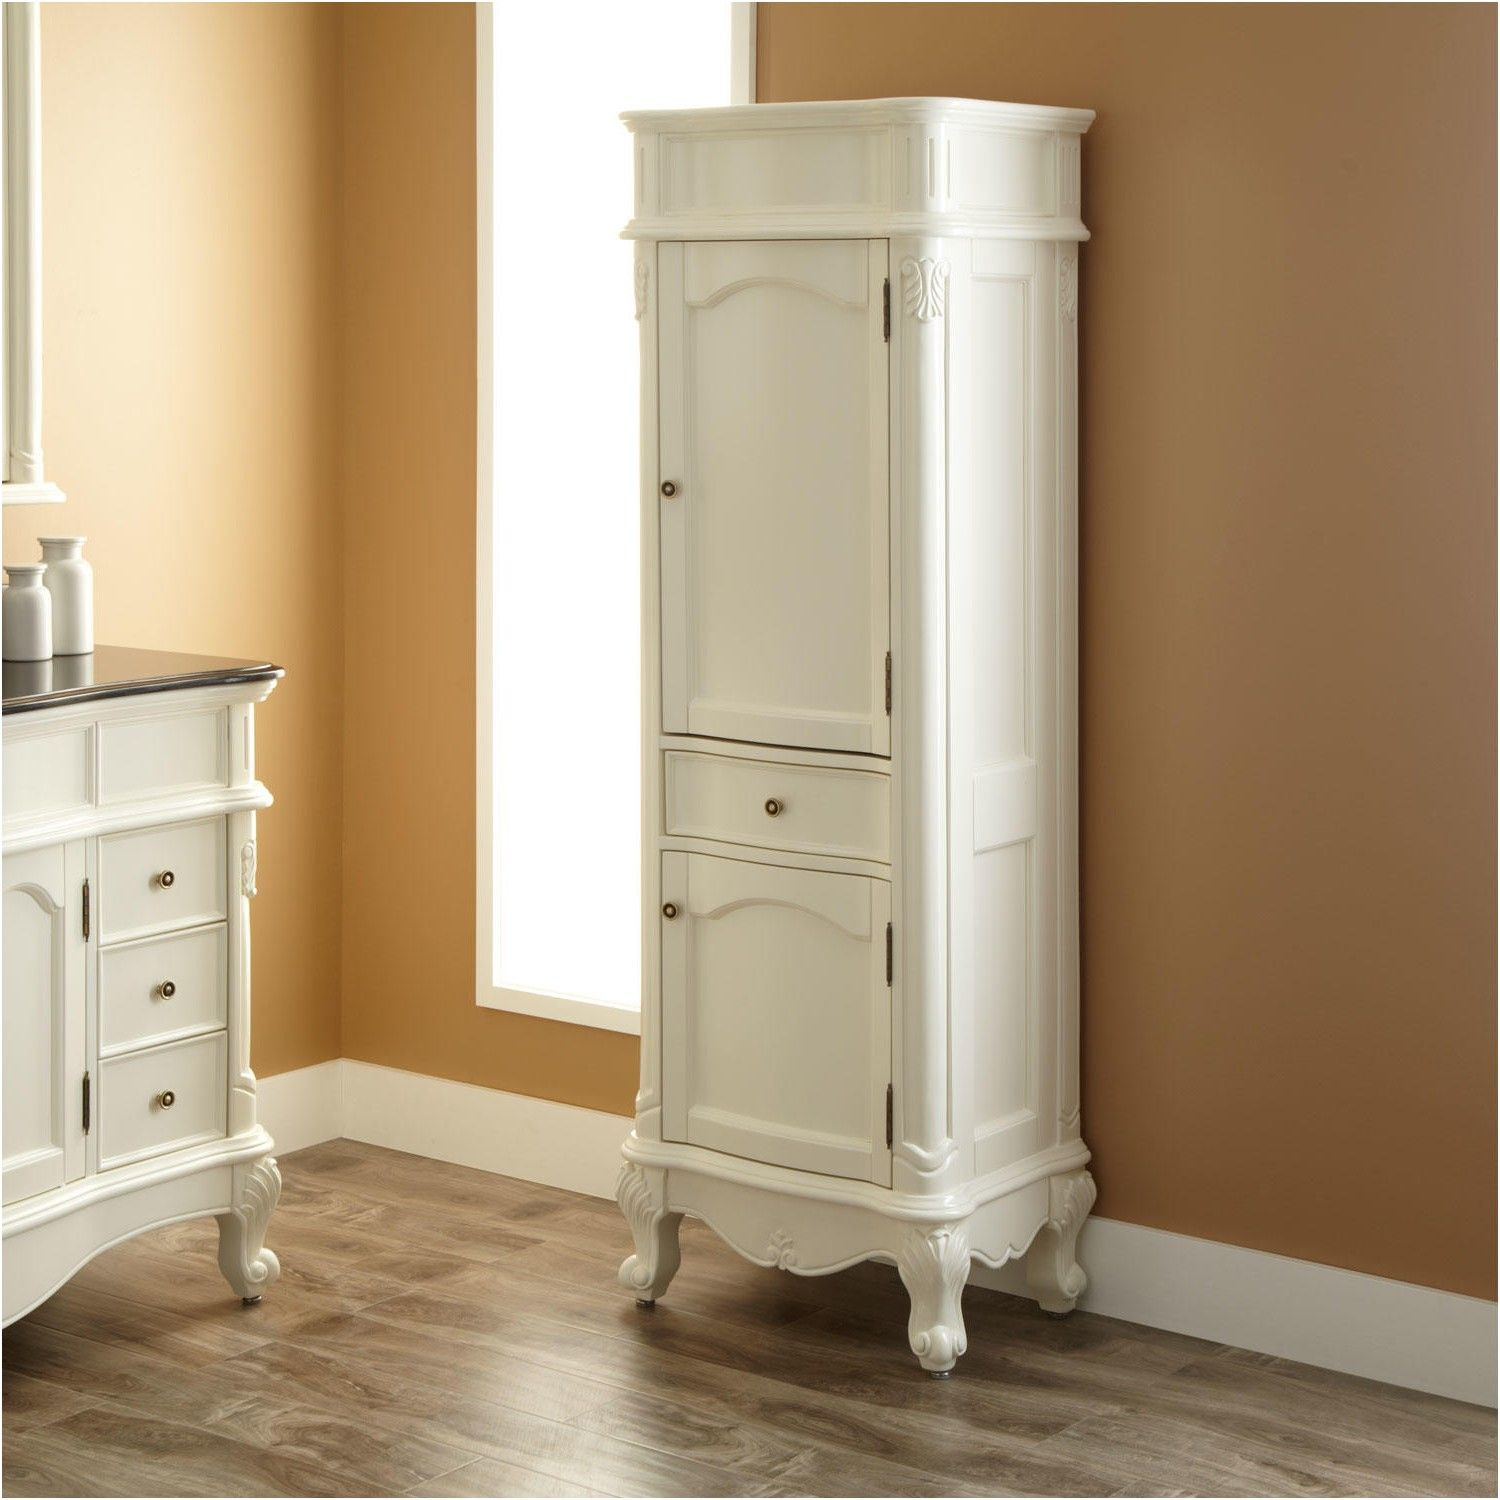 Target Medicine Cabinet Delectable Interesting Bathroom Cabinets Tar Storage E On Inspiration From Design Decoration